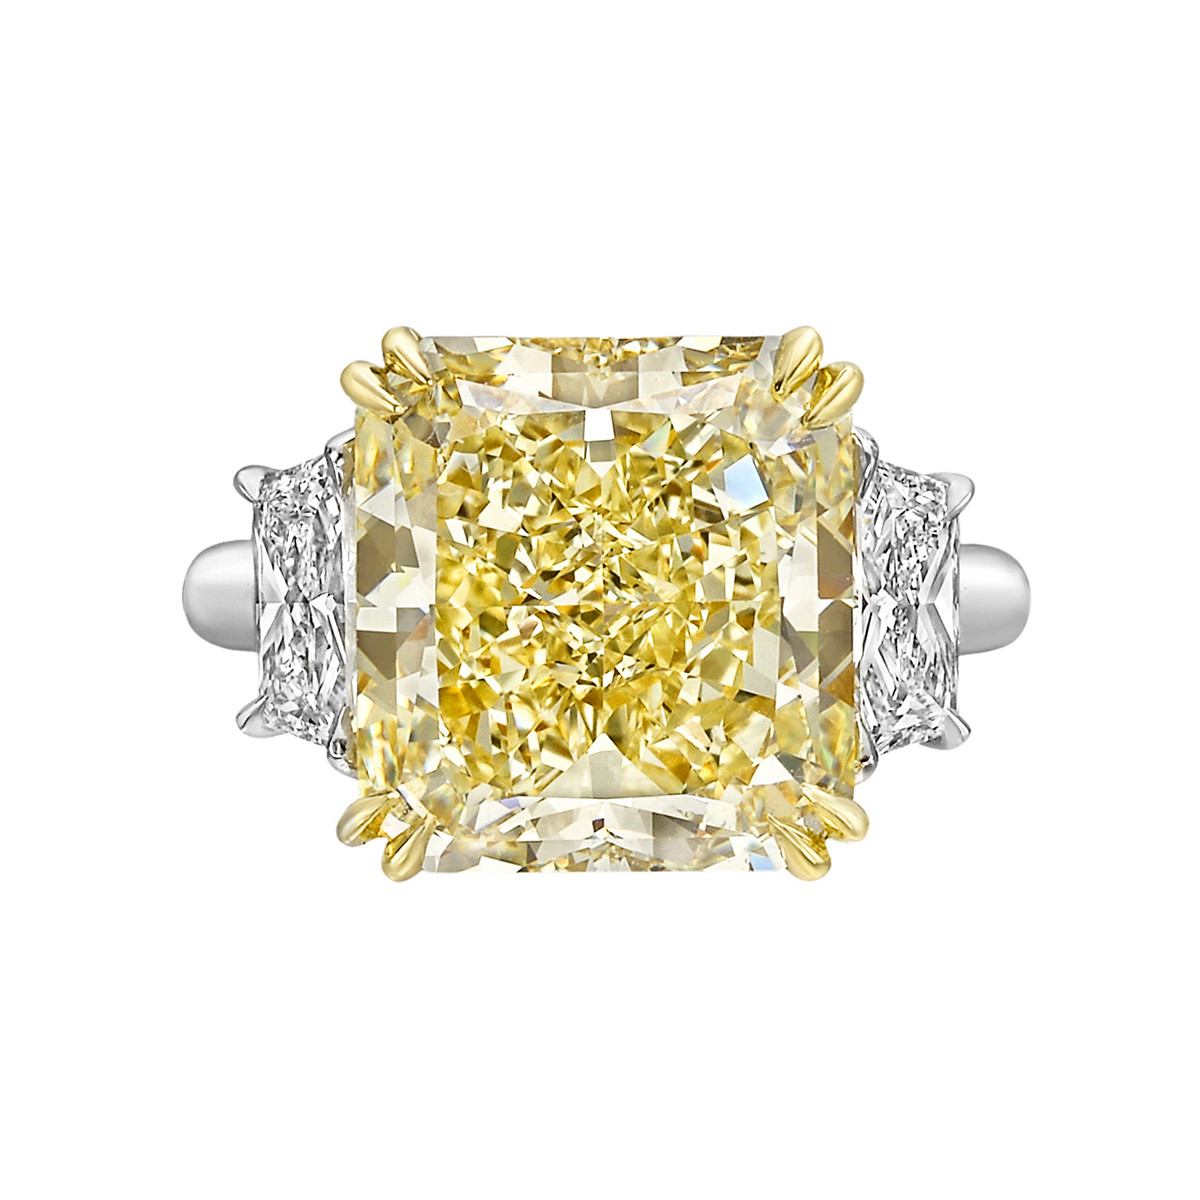 7.39ct Fancy Yellow Diamond Ring